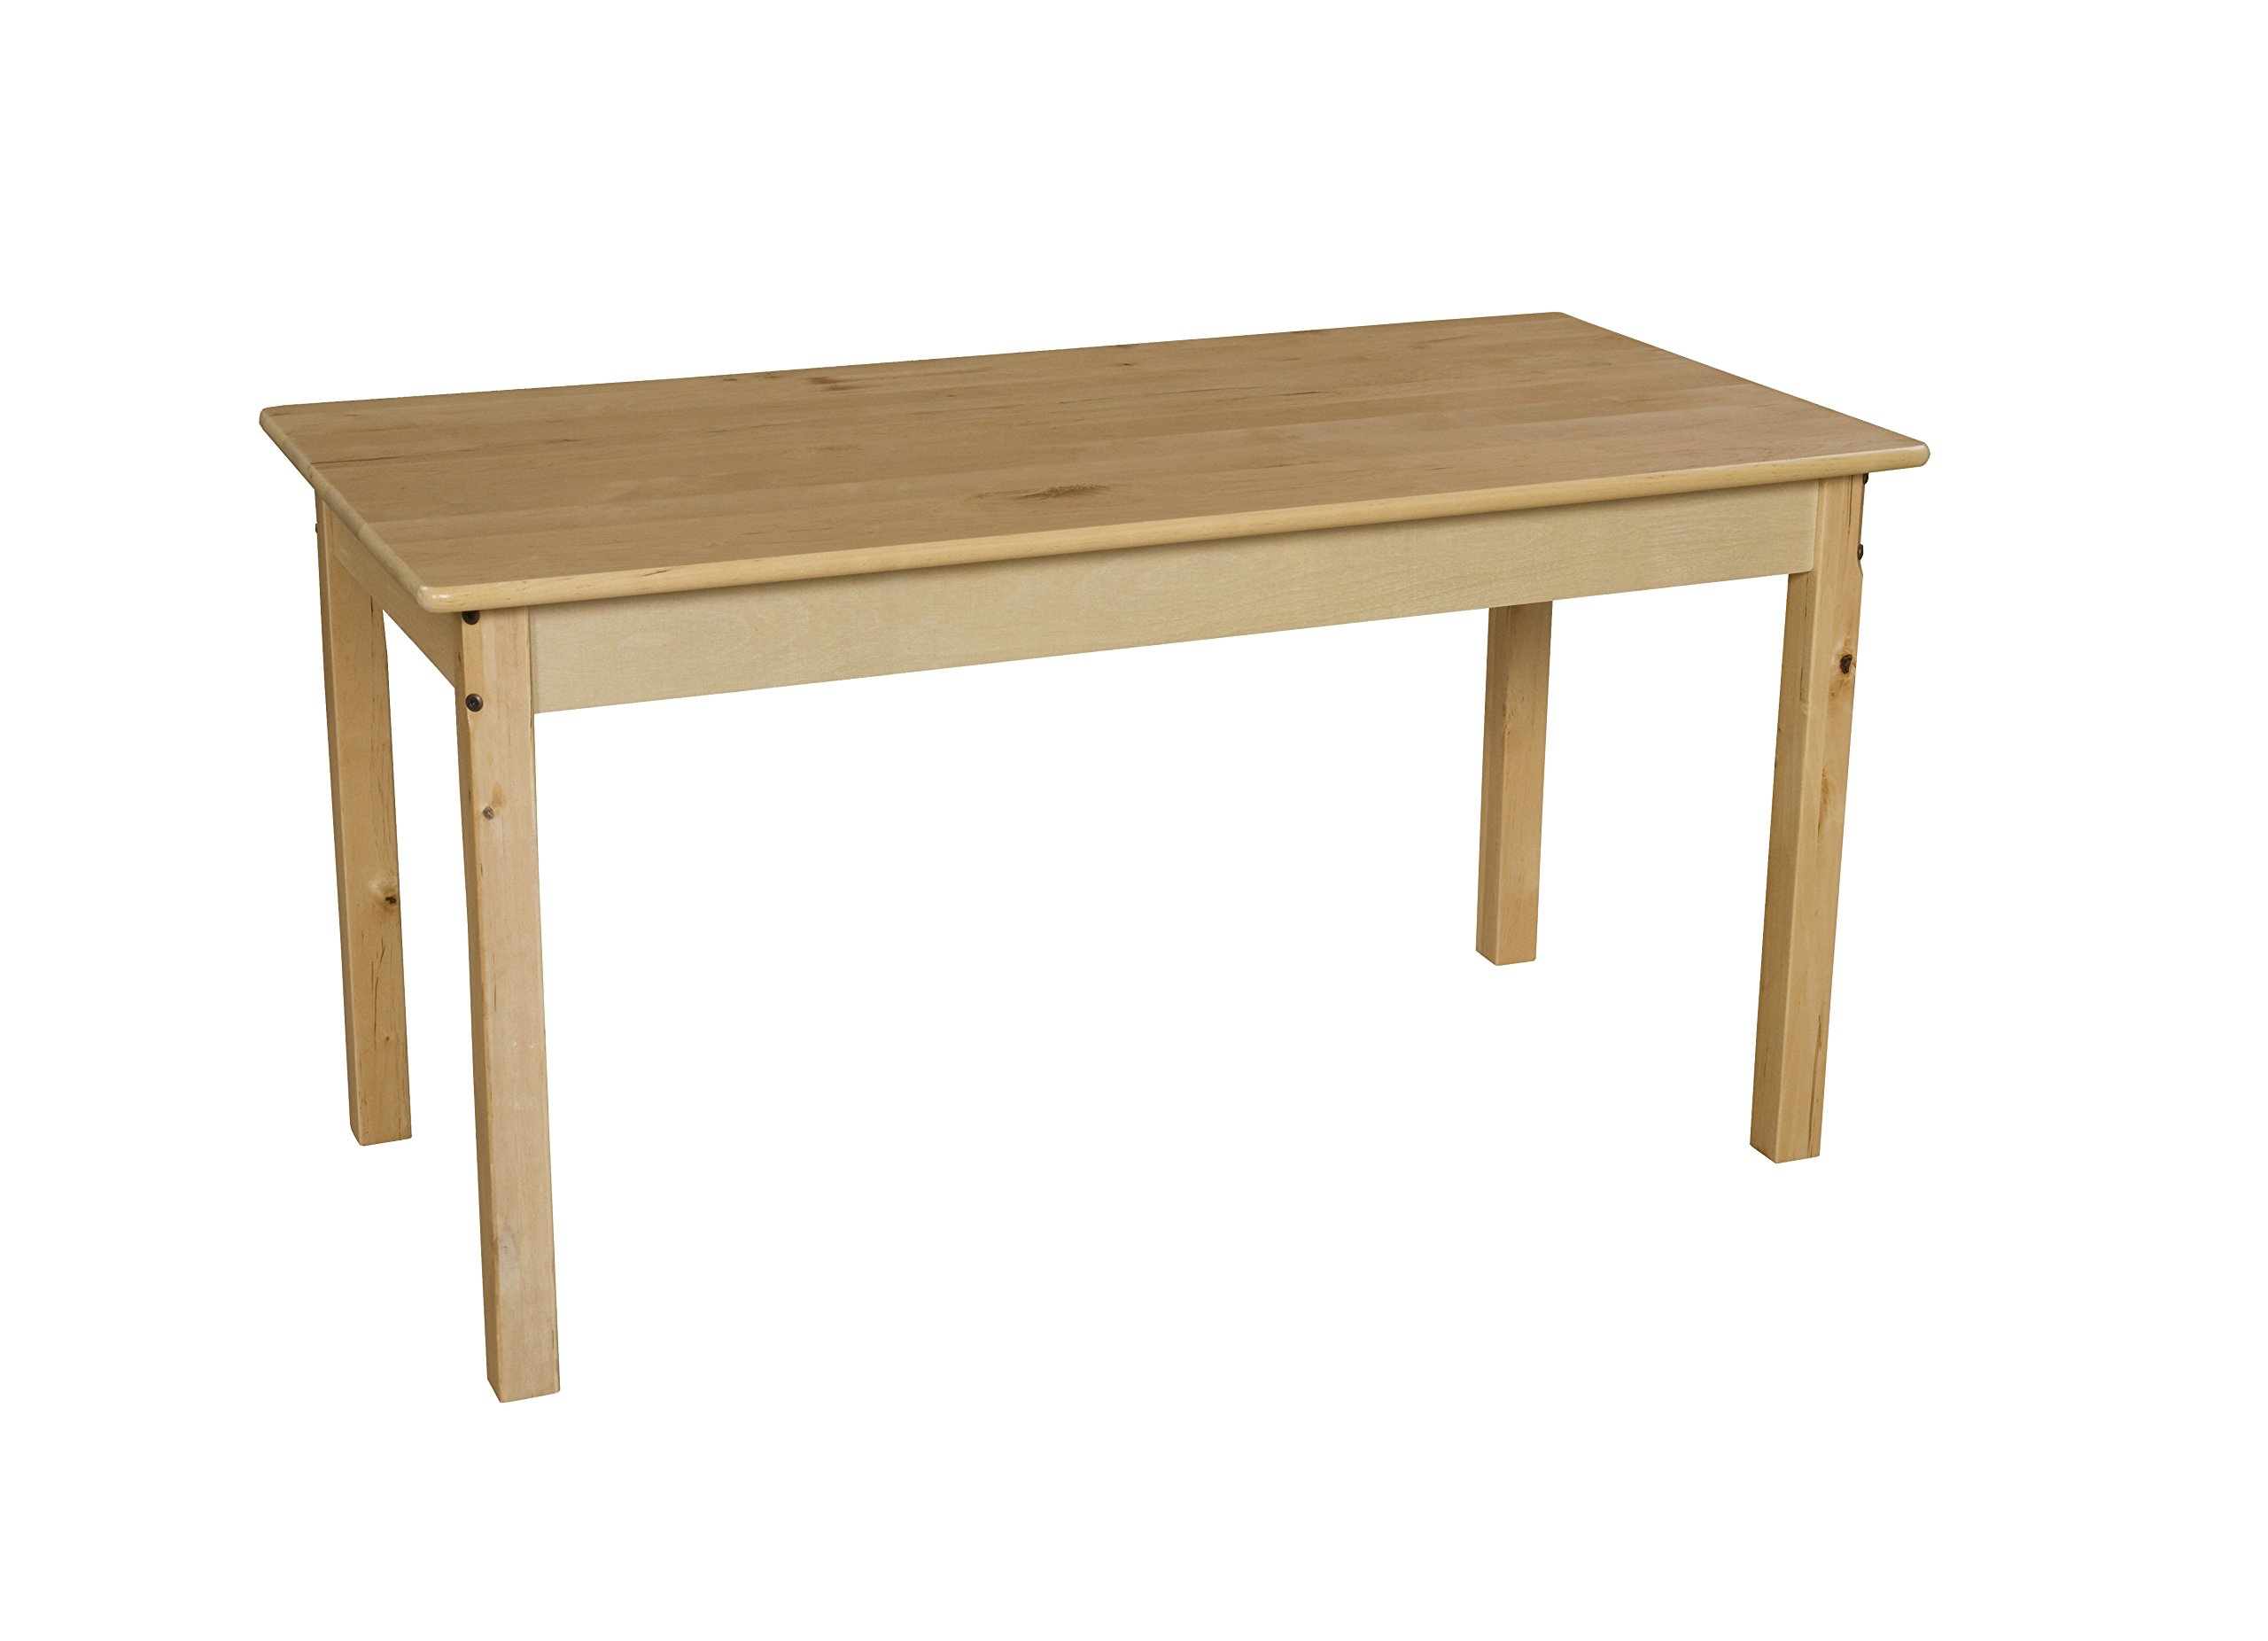 Wood Designs WD84824 Child's Table, 24'' x 48'' Rectangle with 24'' Legs